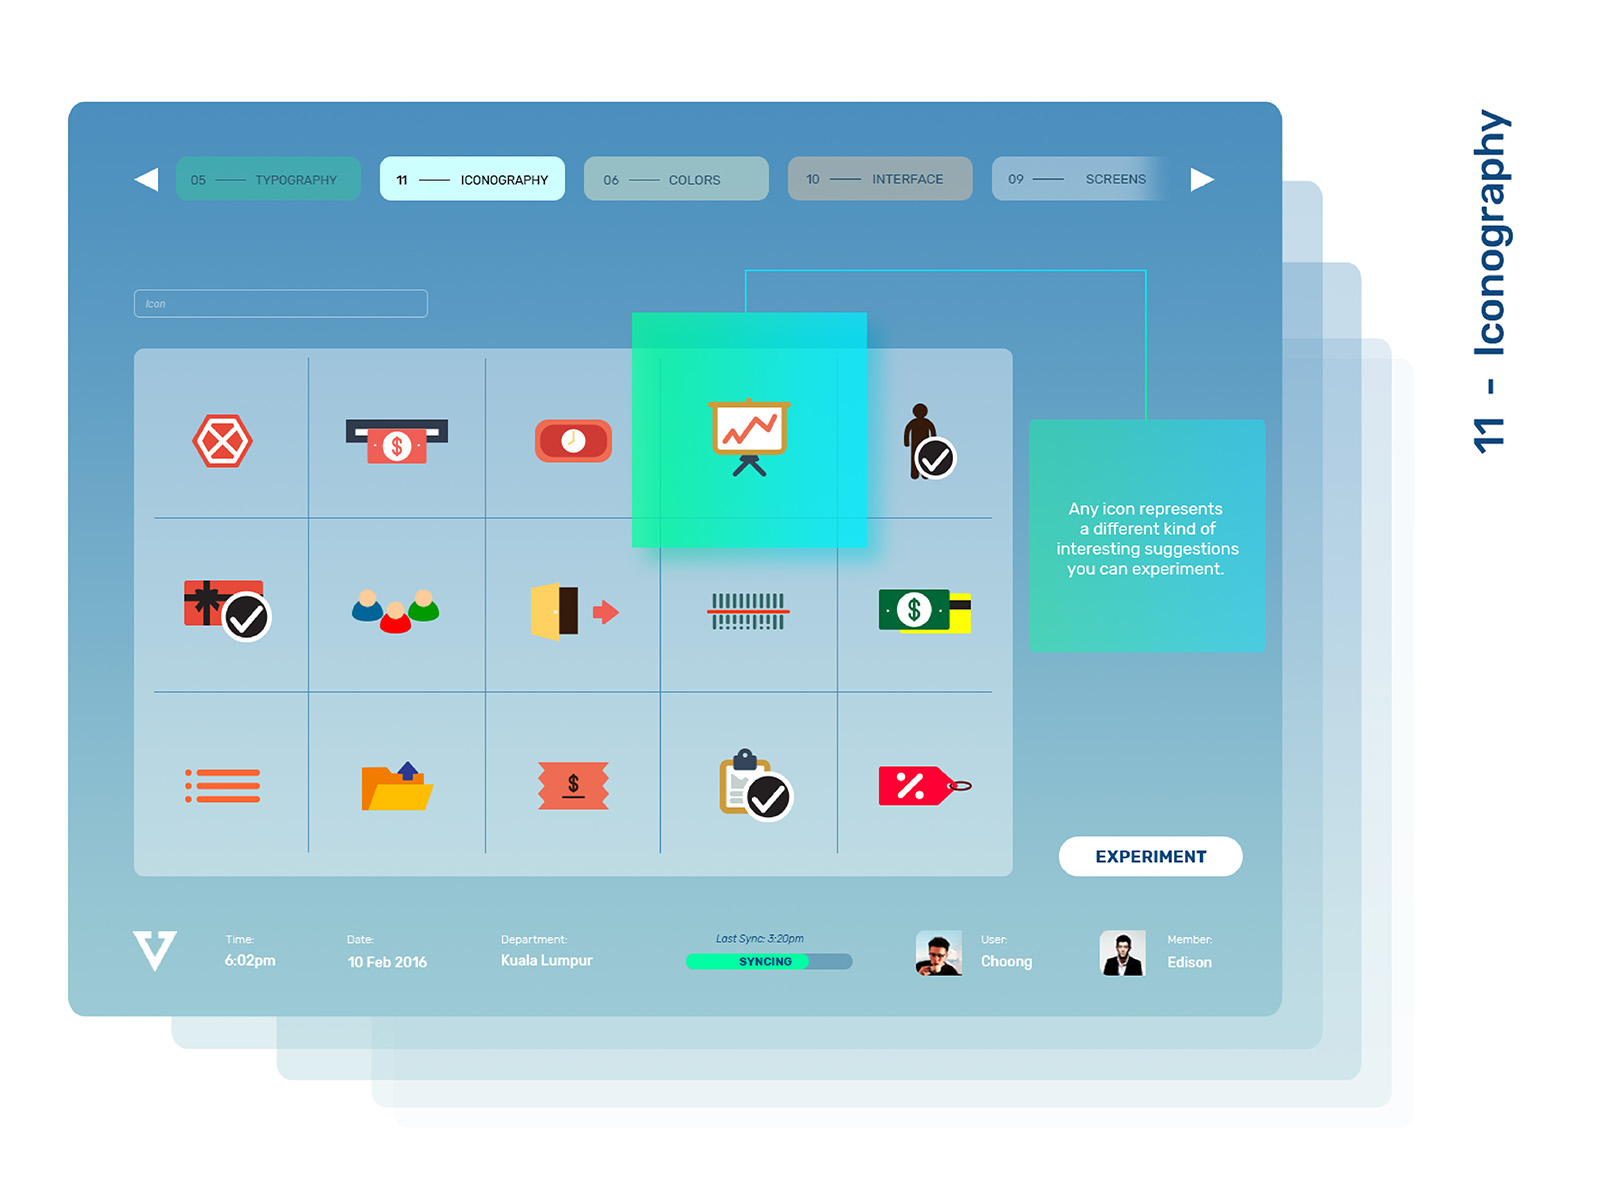 Vipos POS system product user interface and user experience designed featuring various icons design throughout the entire system